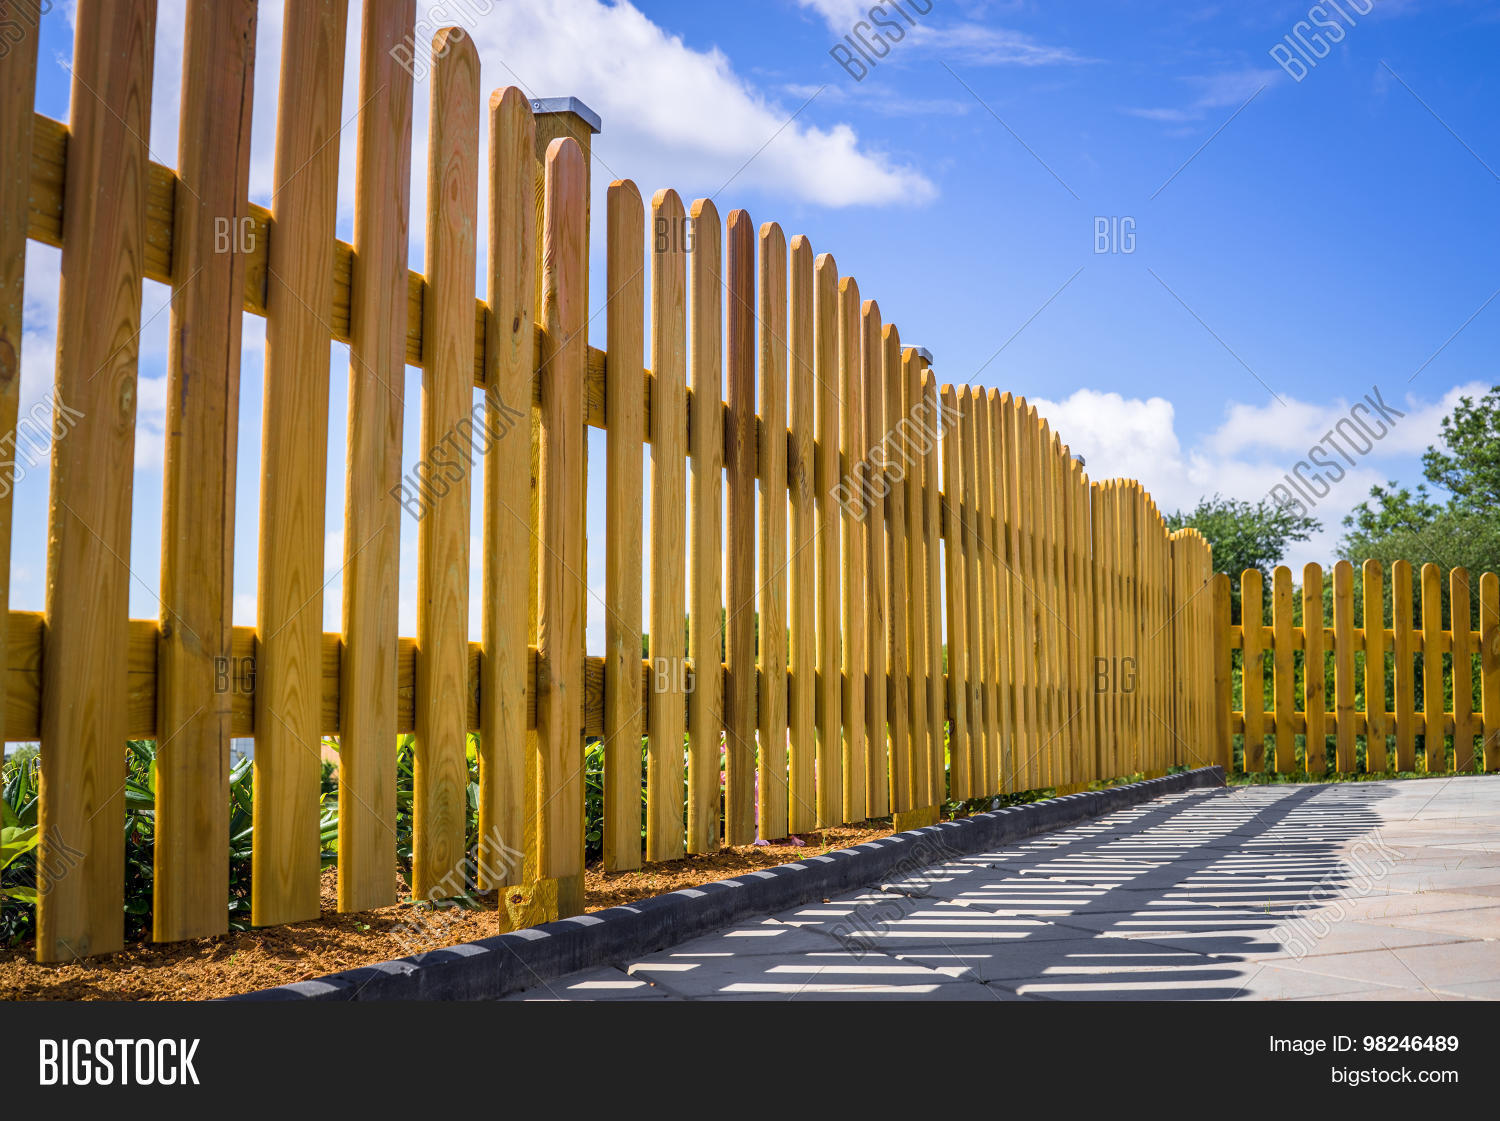 Fence on terrace image photo bigstock for Terrace fence